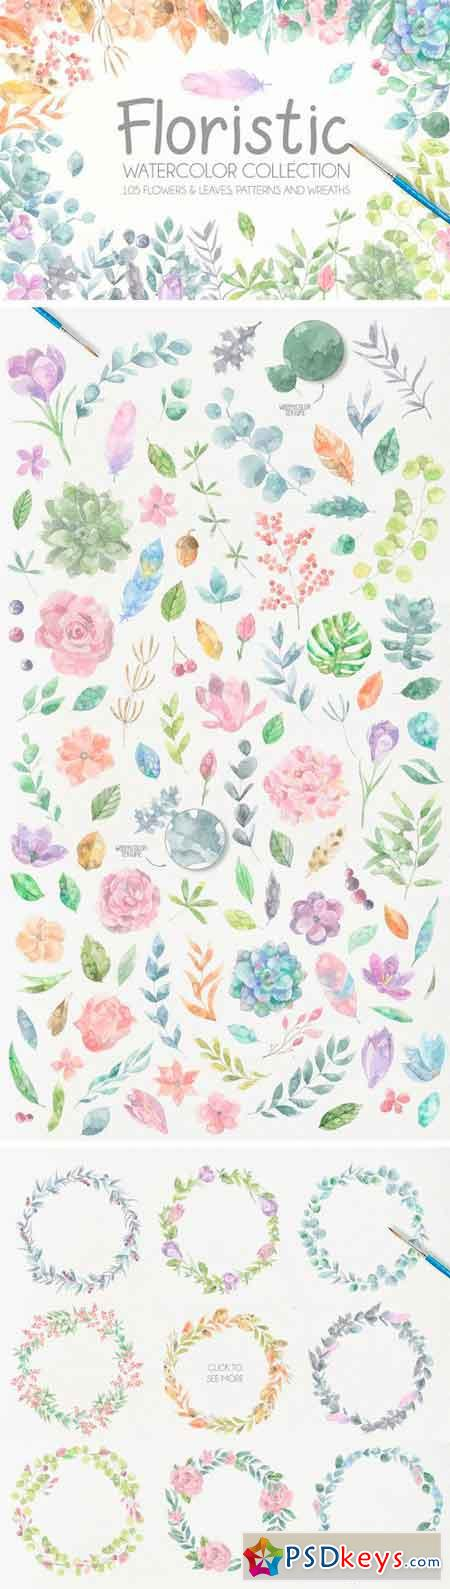 Floristic Watercolor Collection 1211284